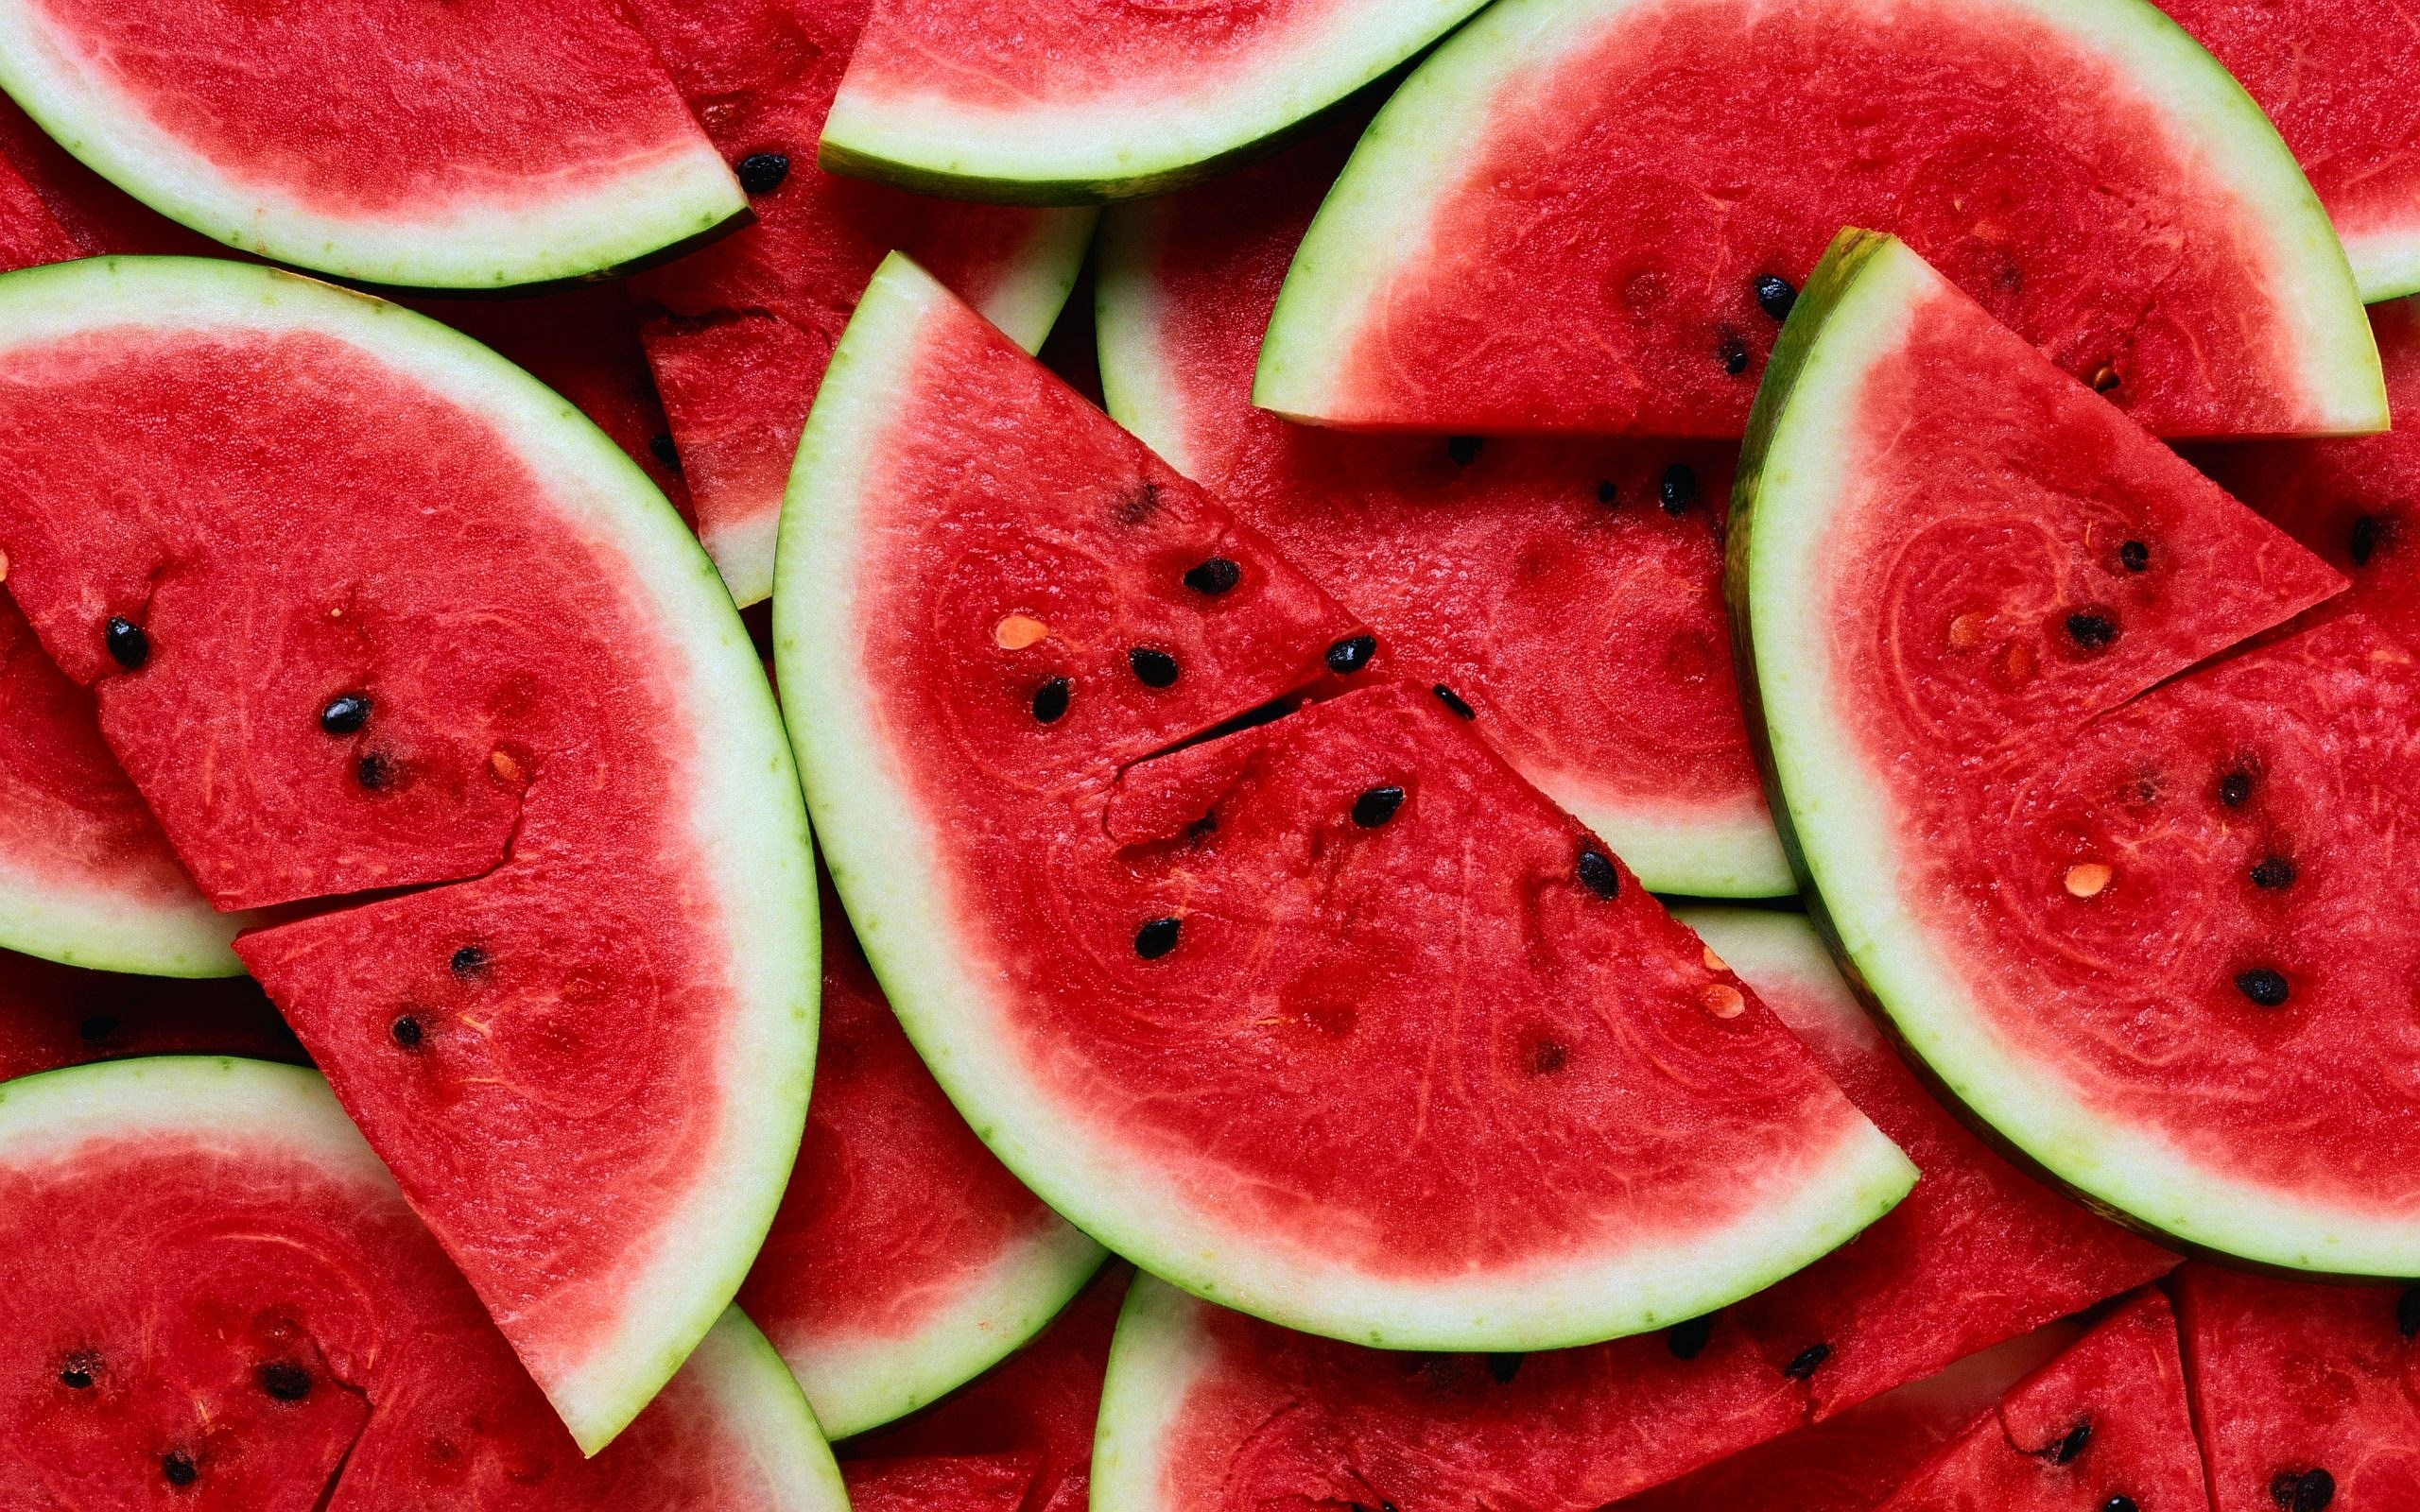 Waterrmelon Slices Background